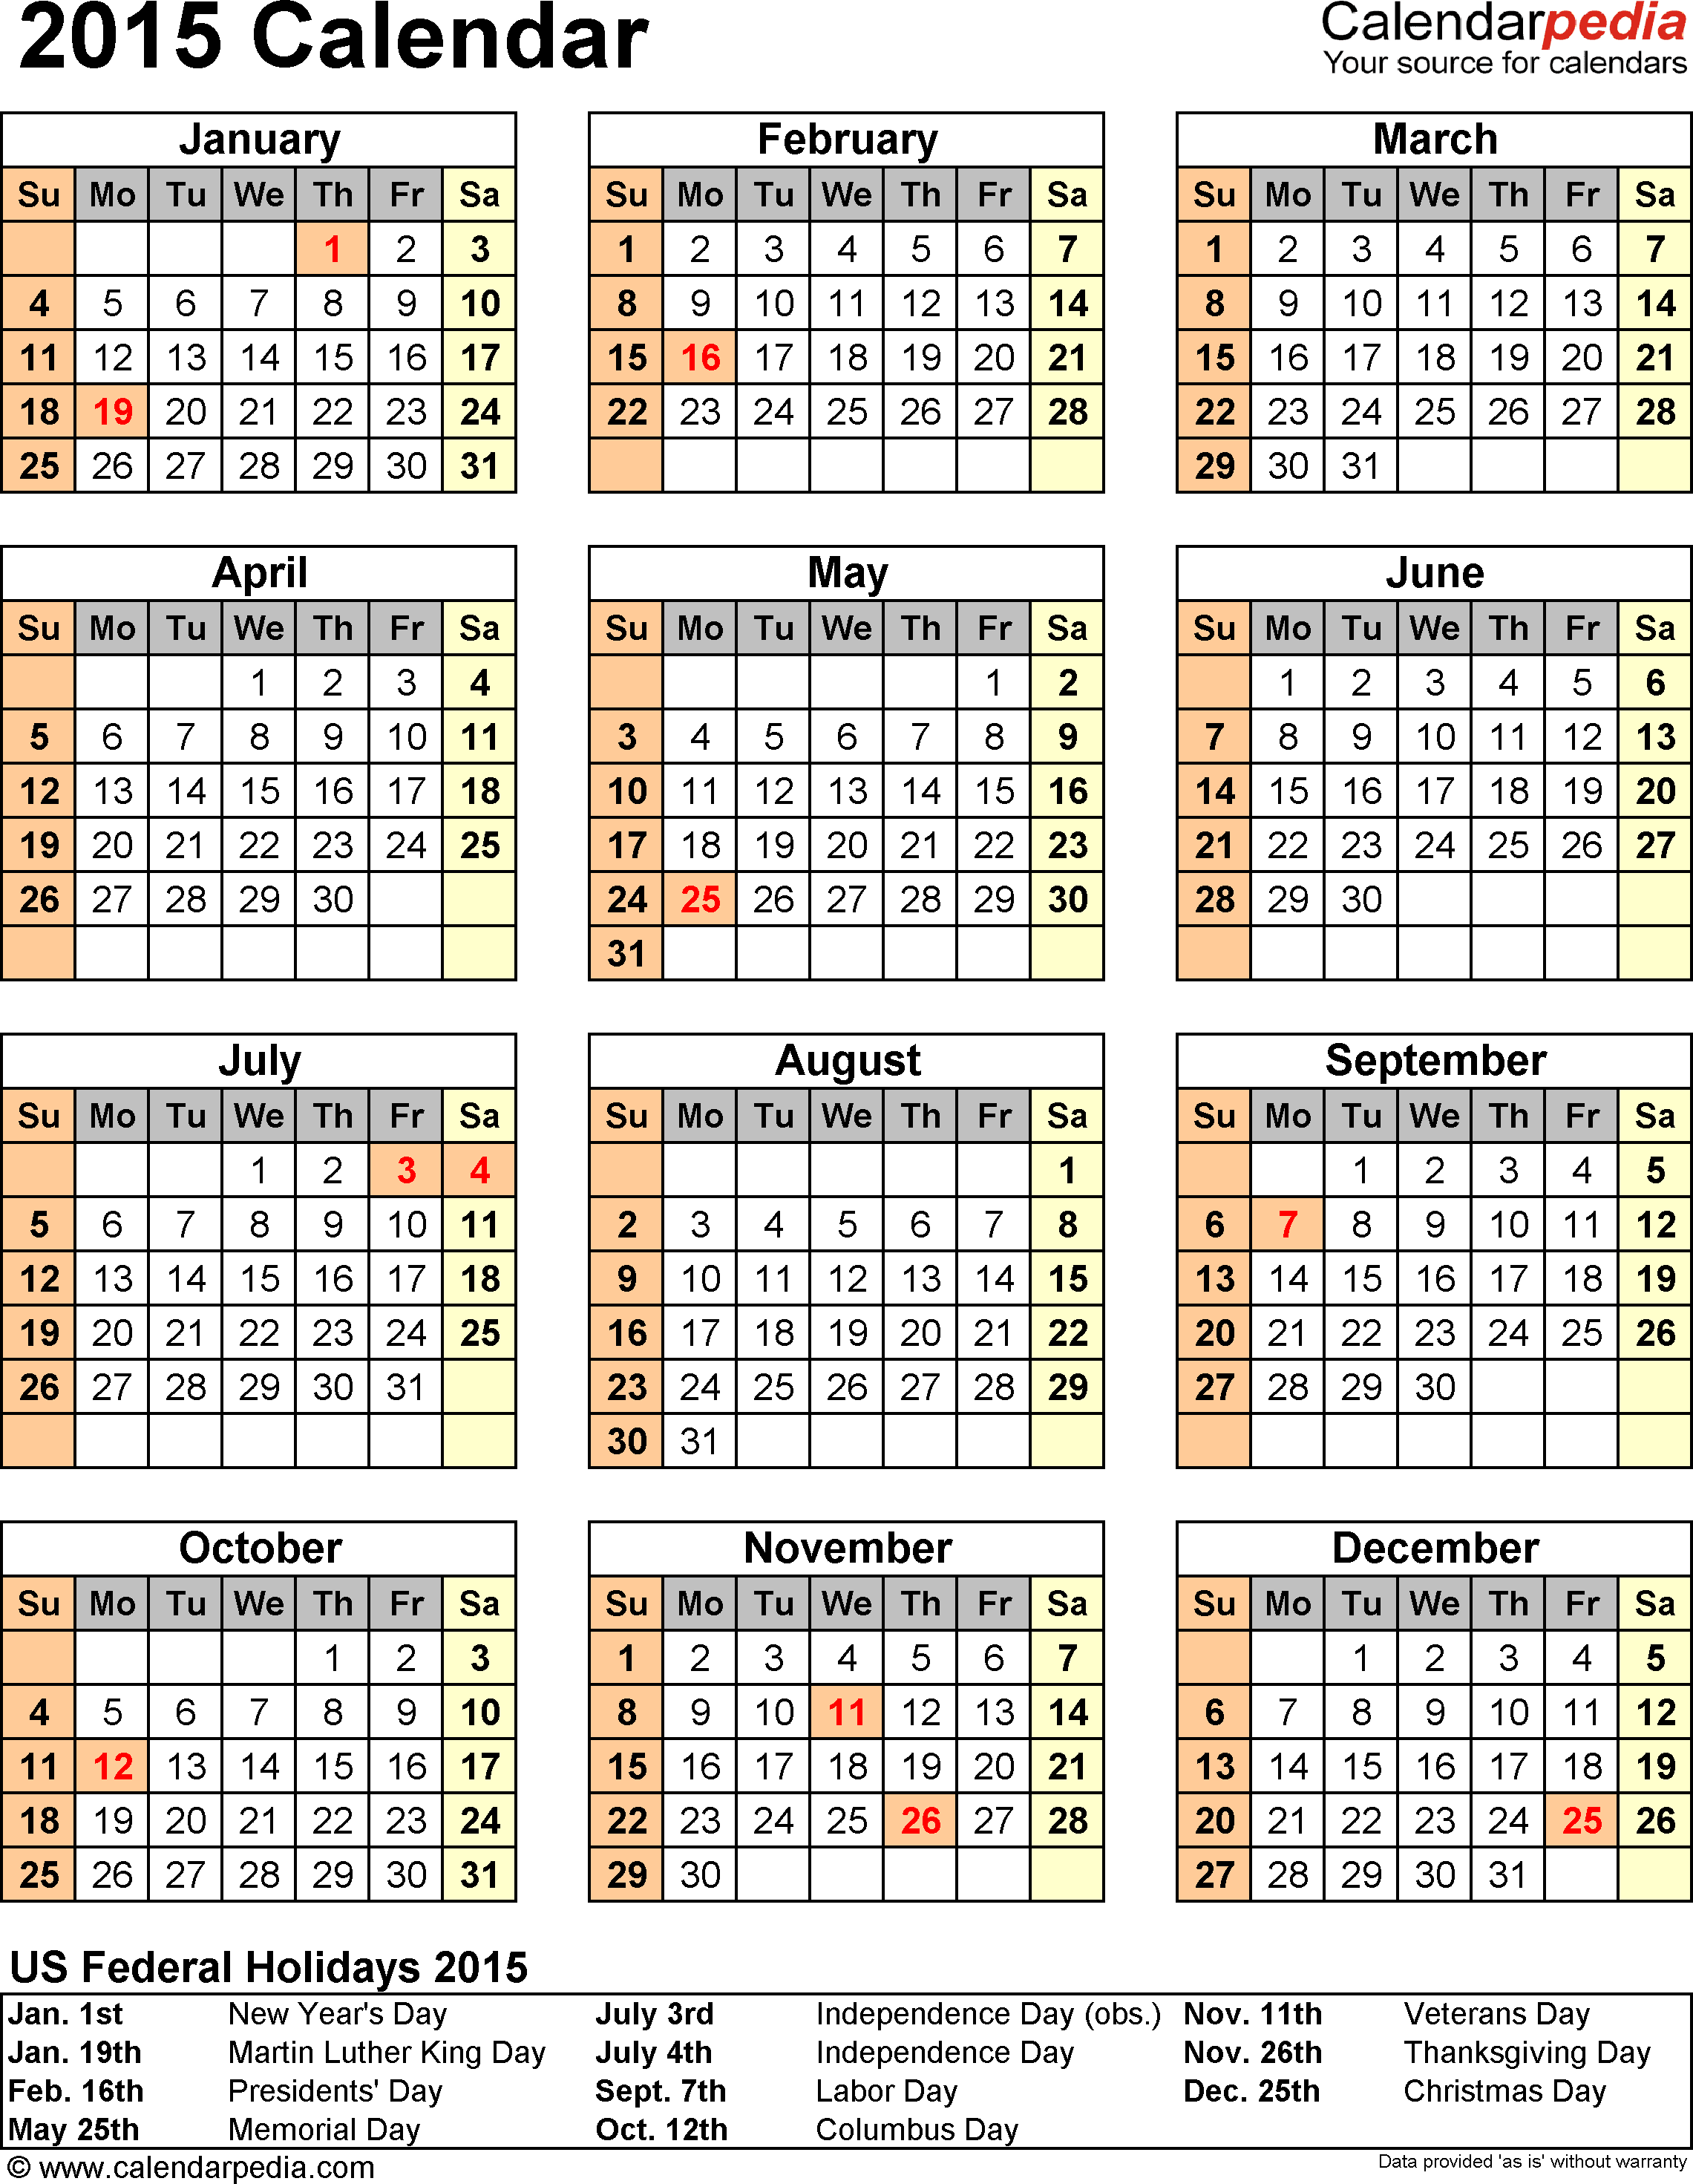 Template 14: 2015 Calendar for PDF, 1 page, portrait orientation